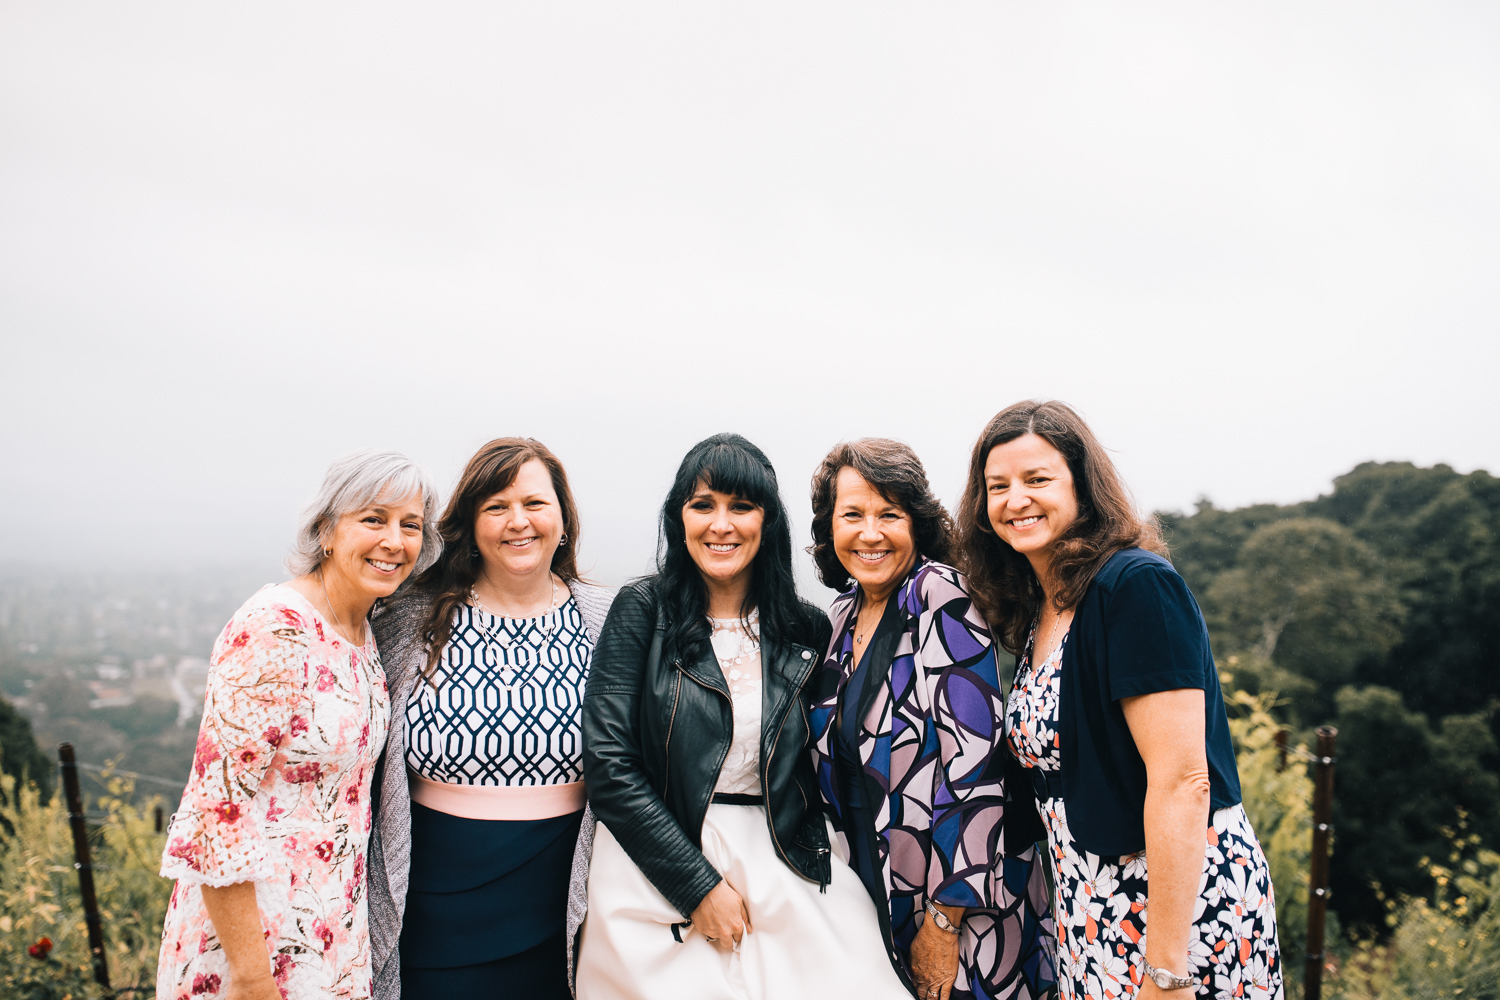 2019_05_ 182019.05.19 Lisa + Eddie South Bay Wedding Blog Photos Edited For Web 0129.jpg